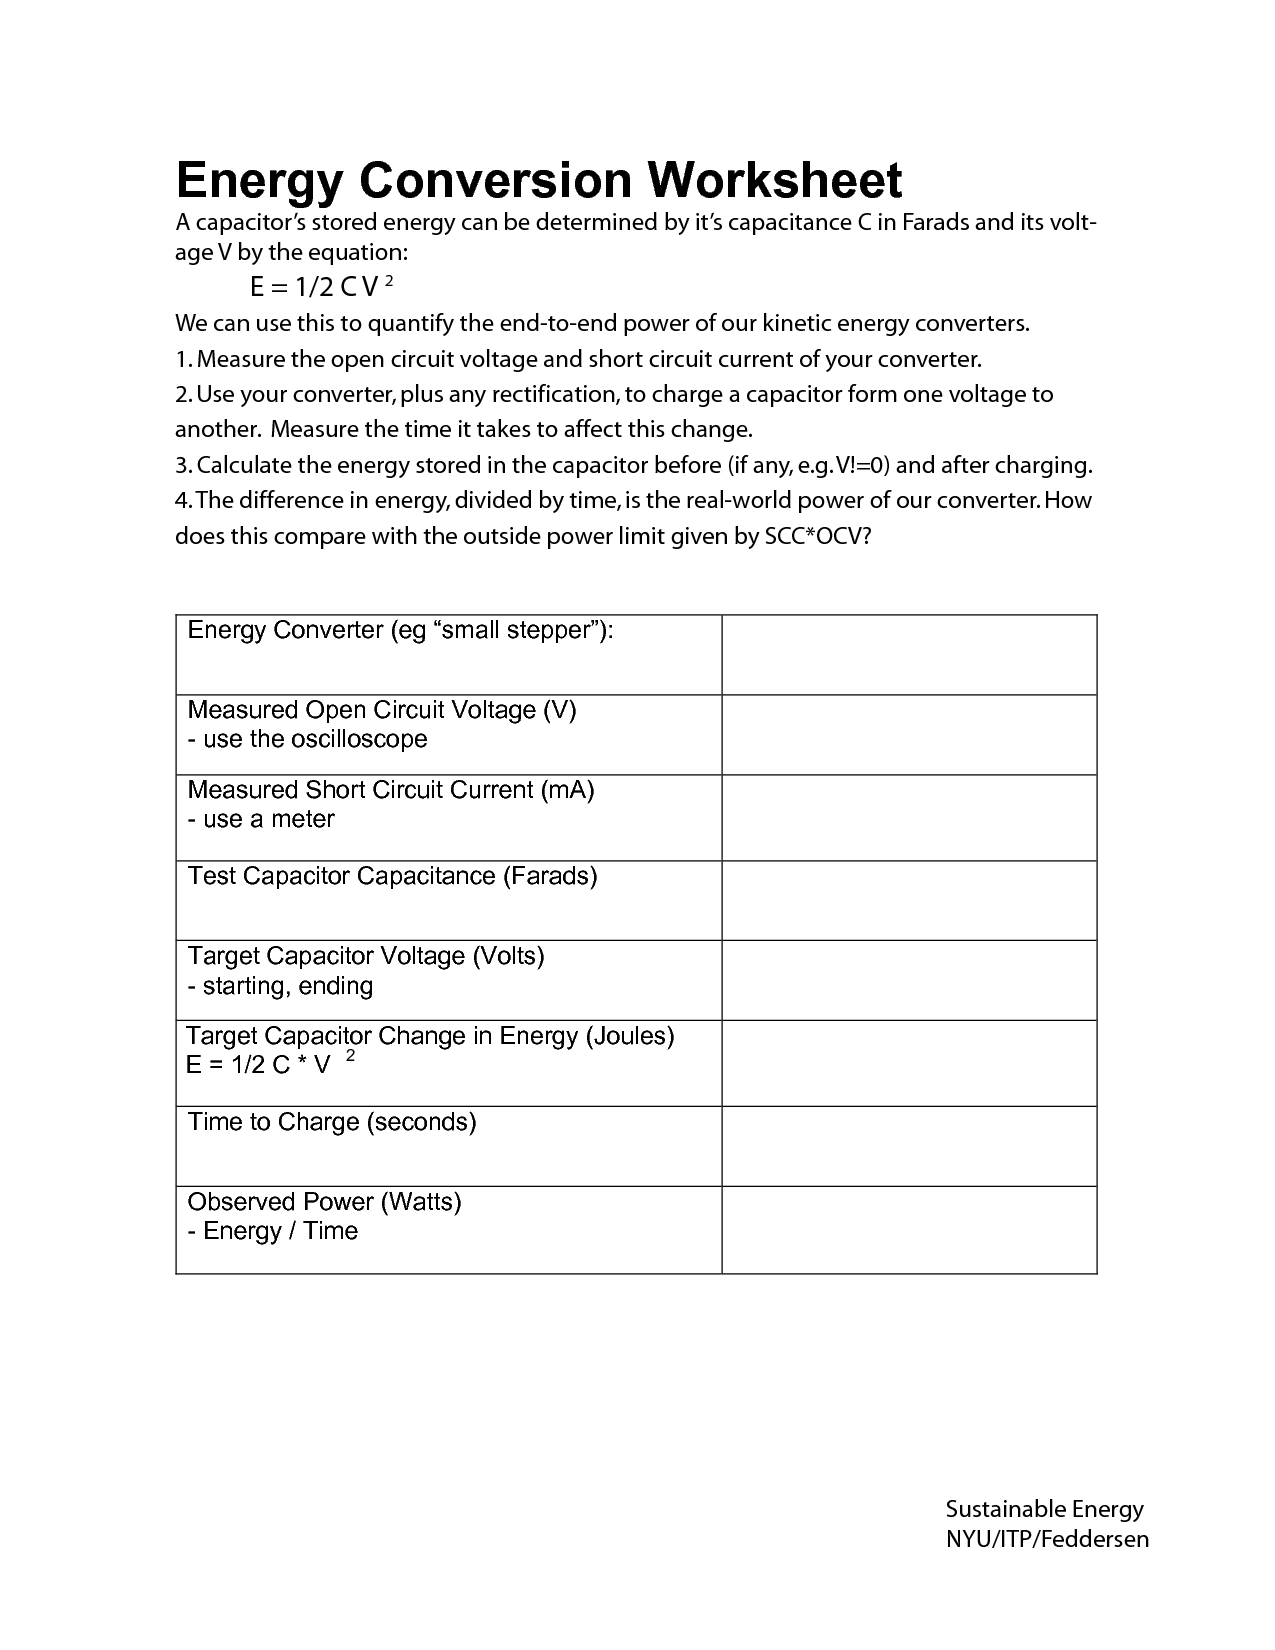 26 Energy Transformation Worksheet Answers